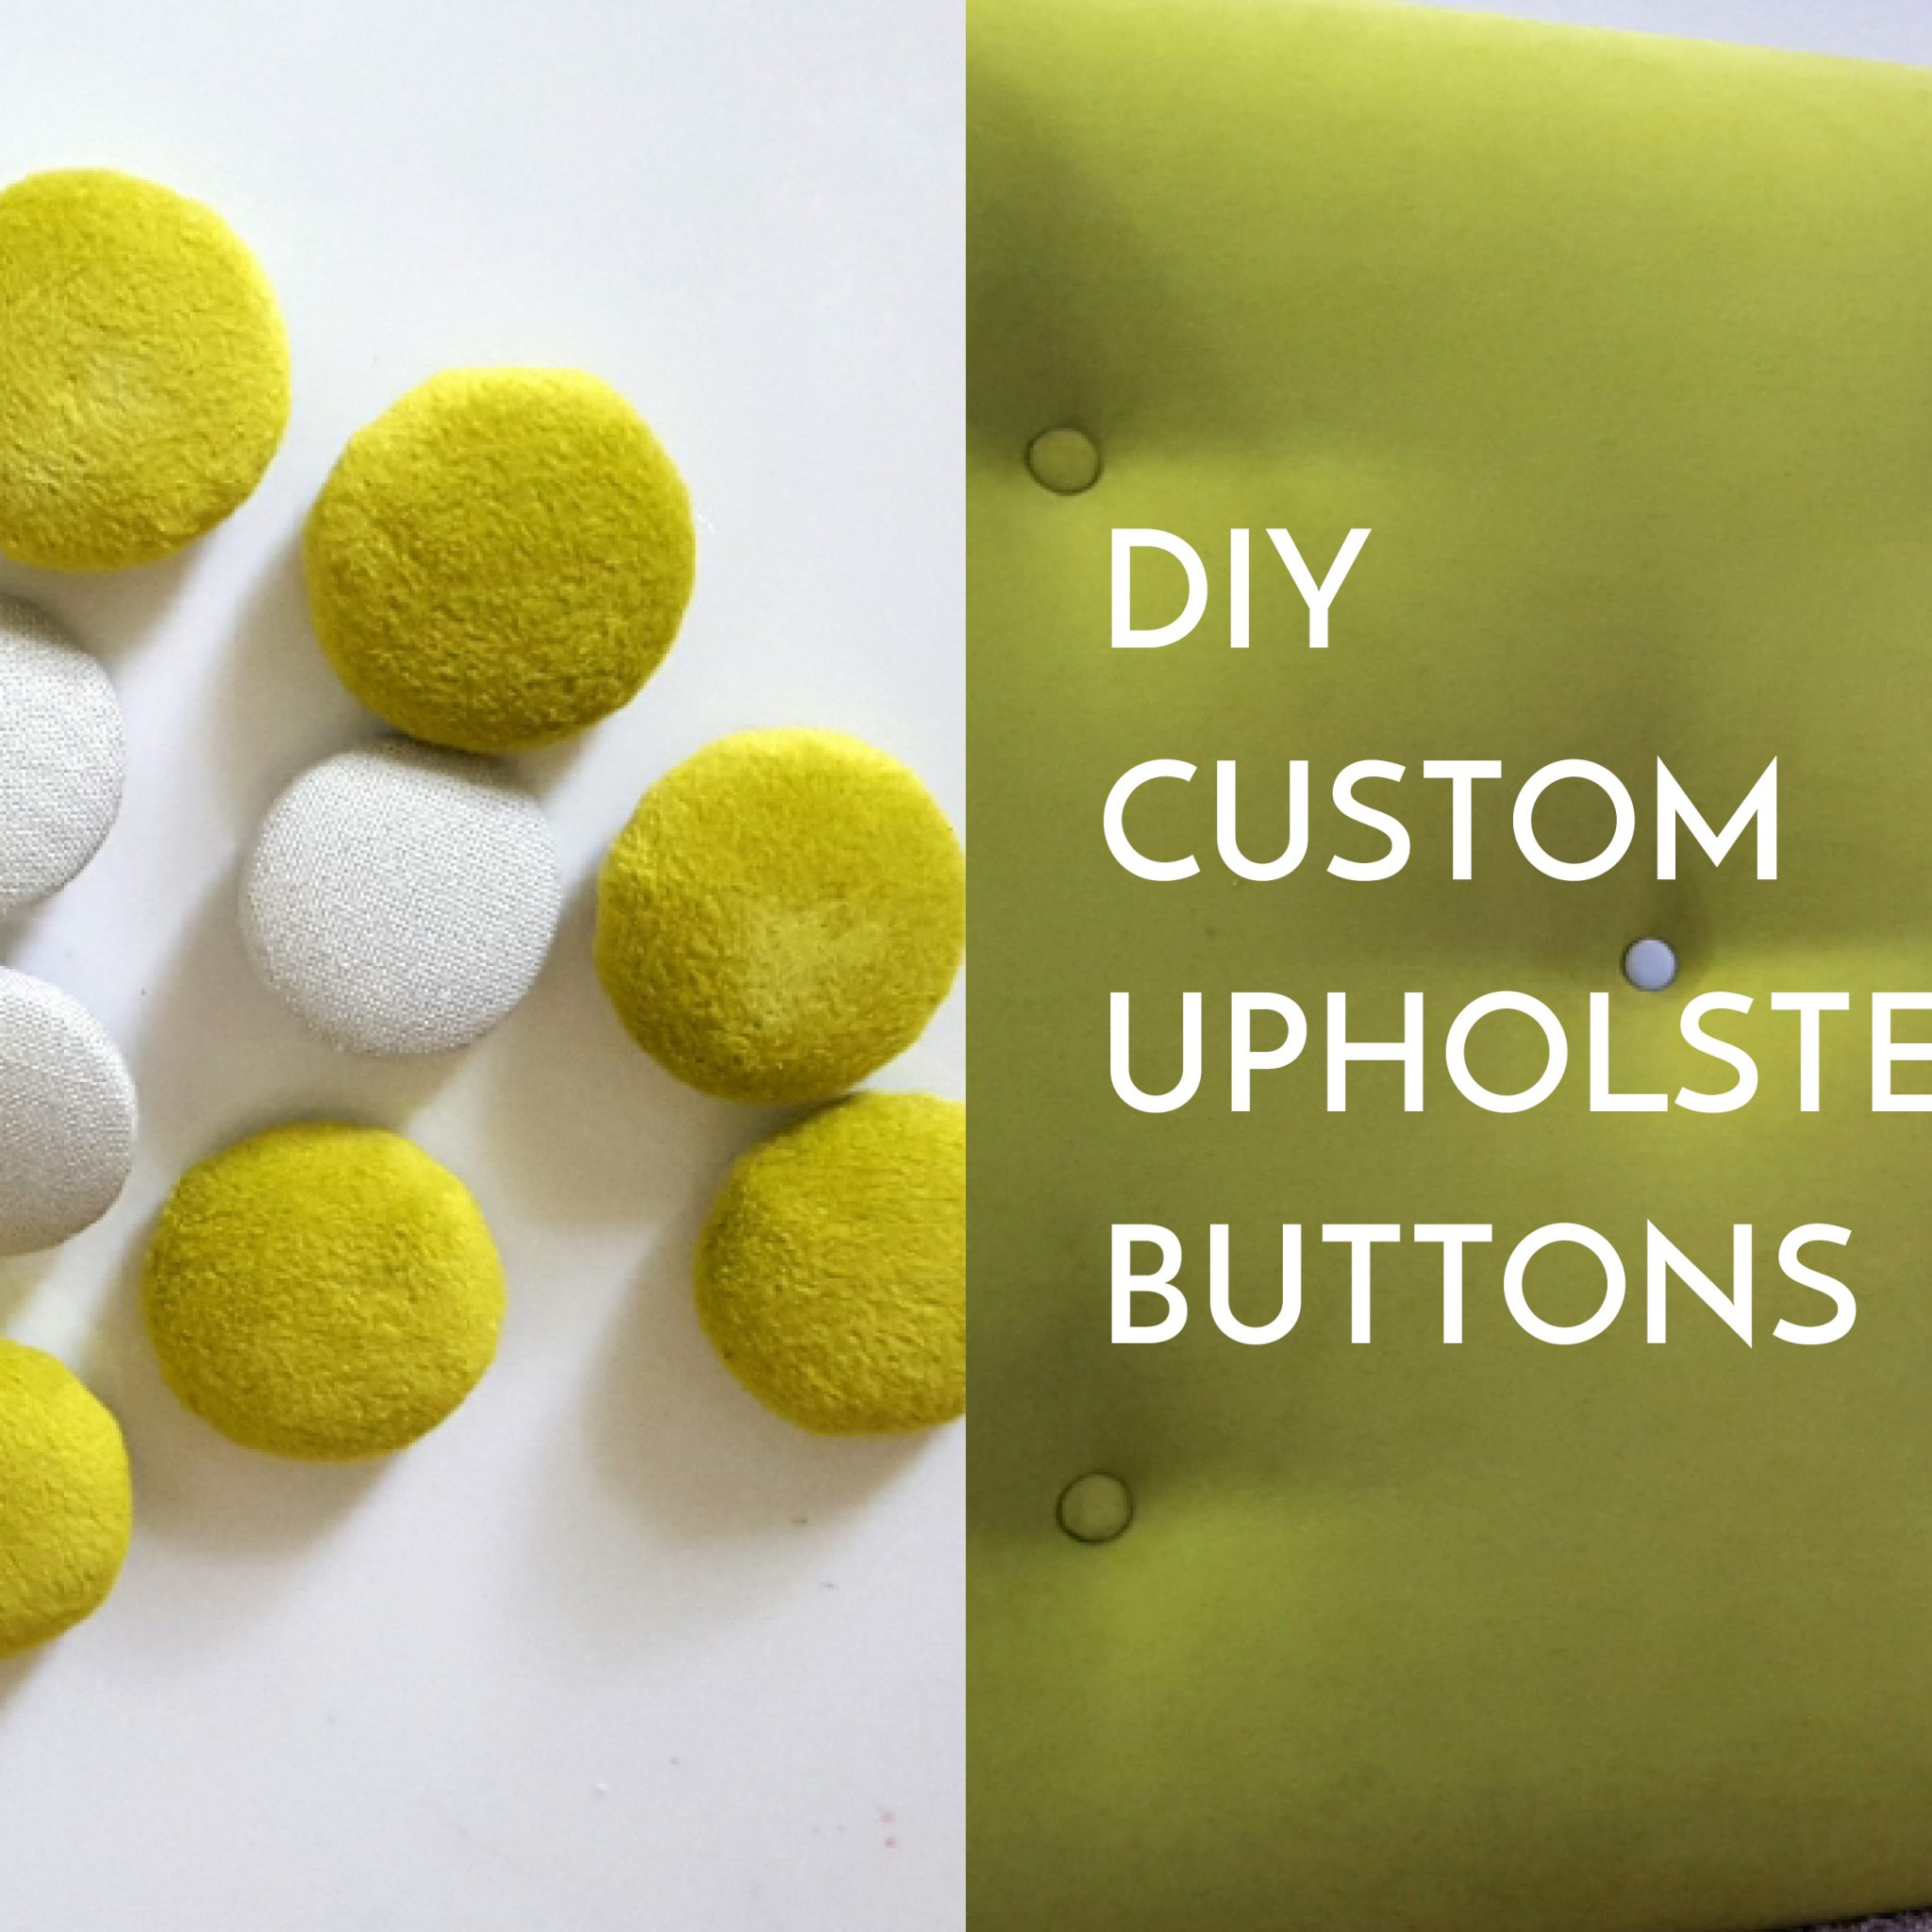 Fabric upholstery button | DIY